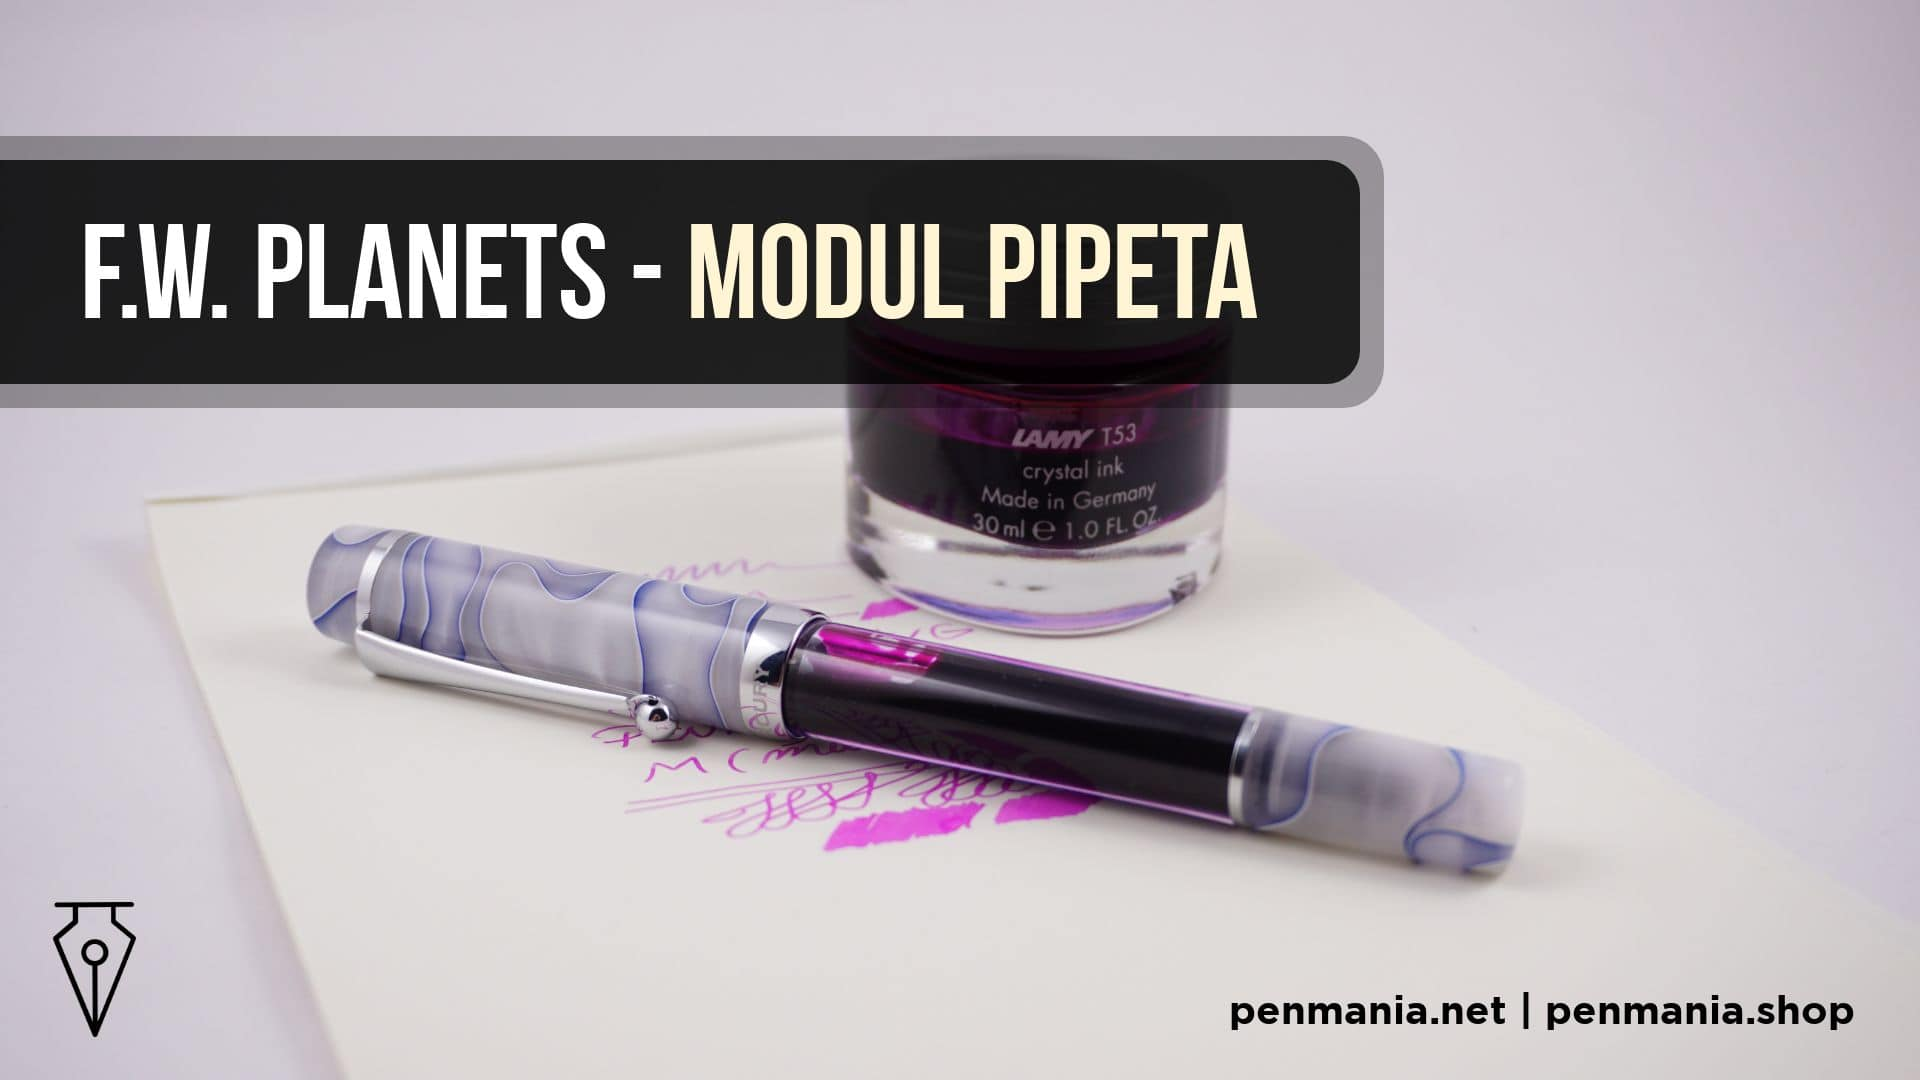 Coperta Video Modul Pipeta Stilou Fine Writing Planets Penmania Shop